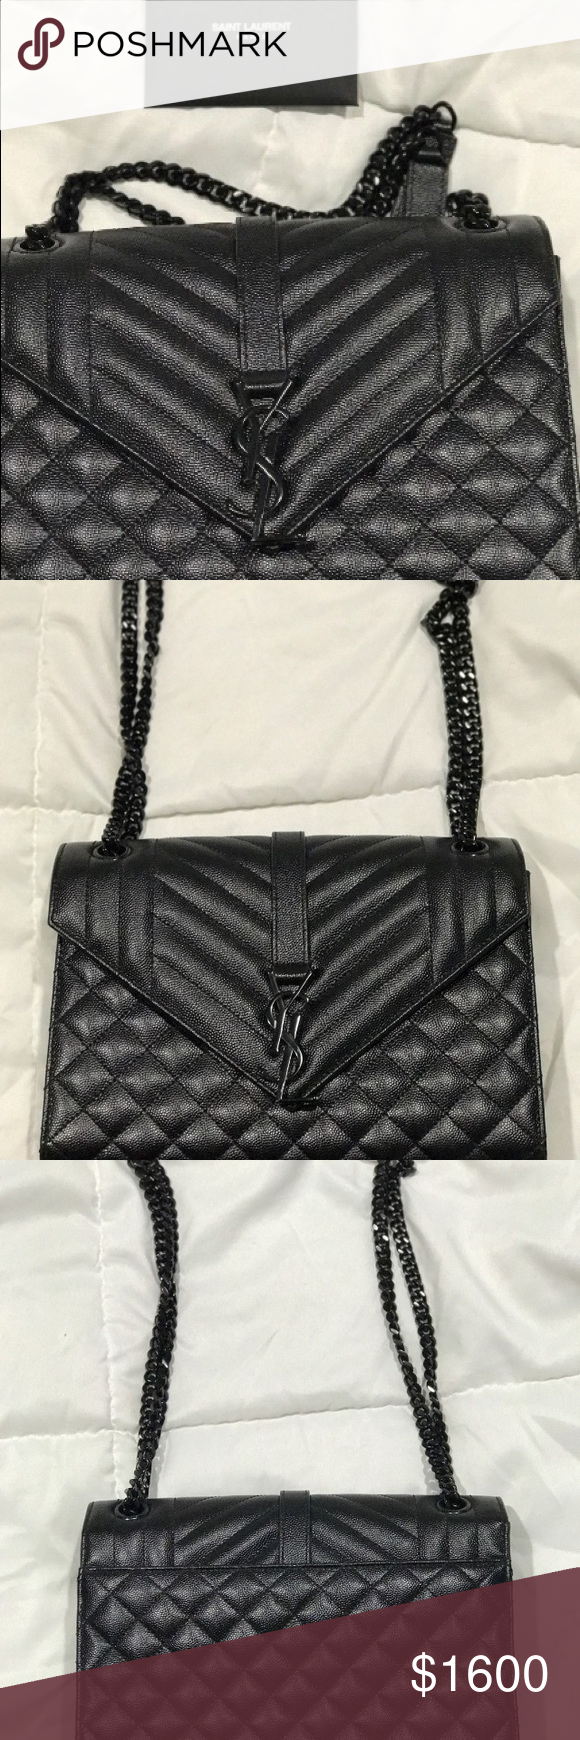 YSL Black Quilted Side Bag Used once 9d4f56ccd5f6d